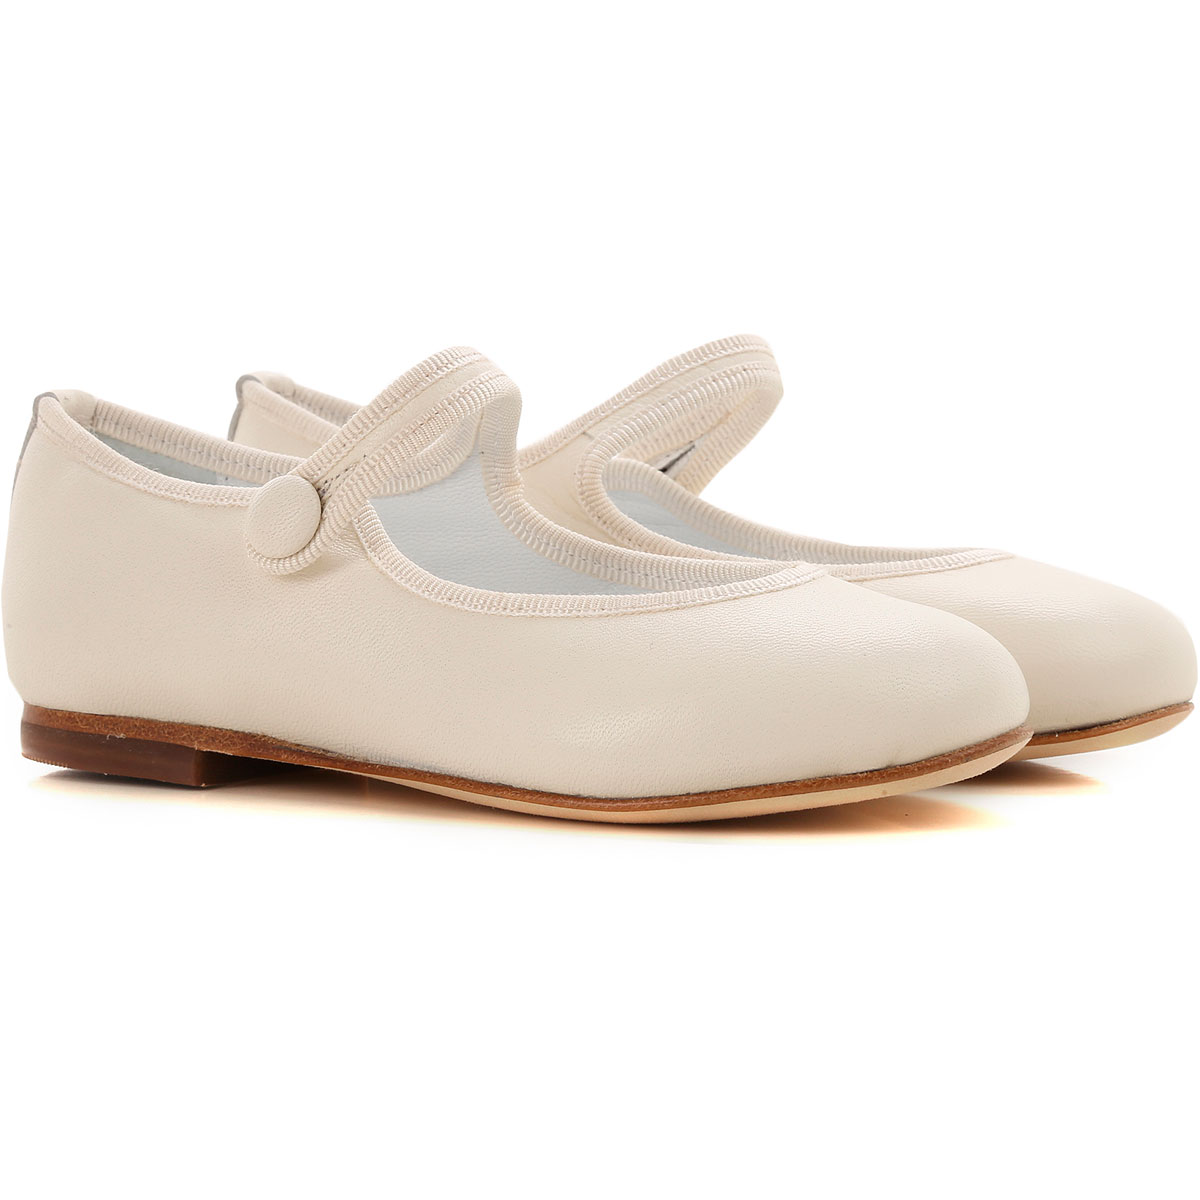 Image of Prosperine Kids Shoes for Girls, Ivory, Leather, 2017, 23 24 25 26 27 28 29 30 31 32 33 34 35